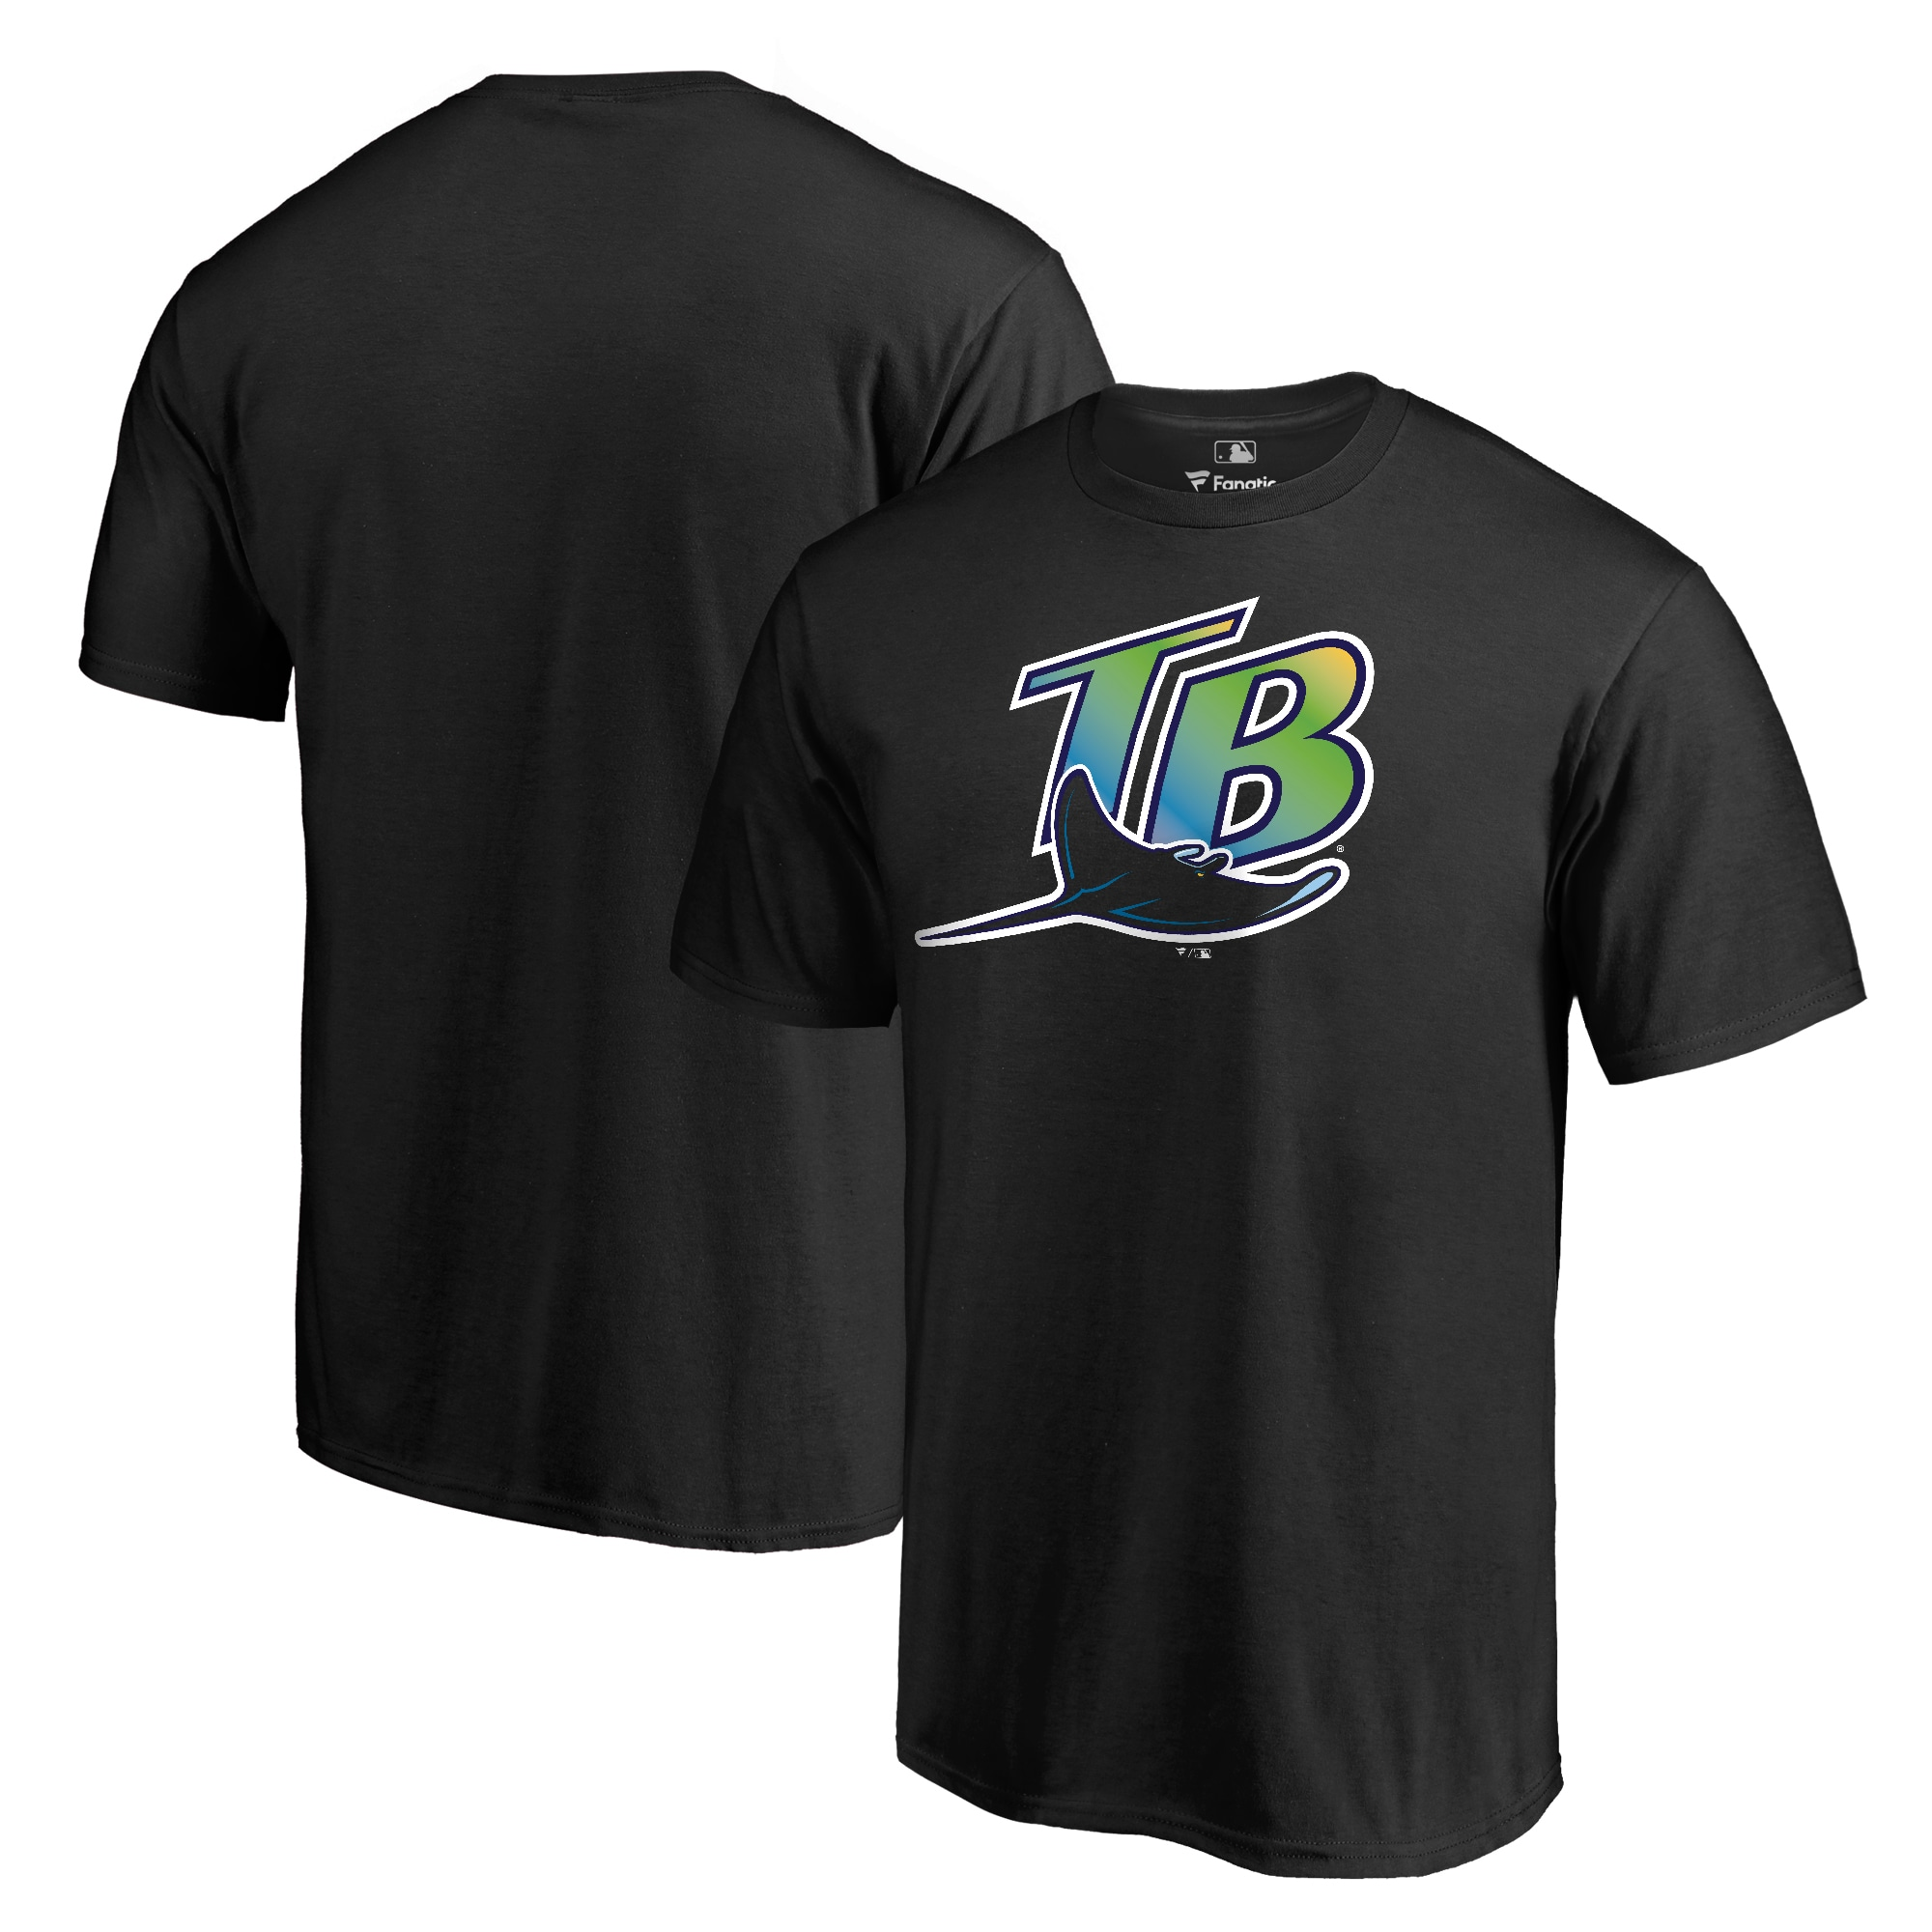 Tampa Bay Rays Fanatics Branded Cooperstown Collection Forbes T-Shirt - Black